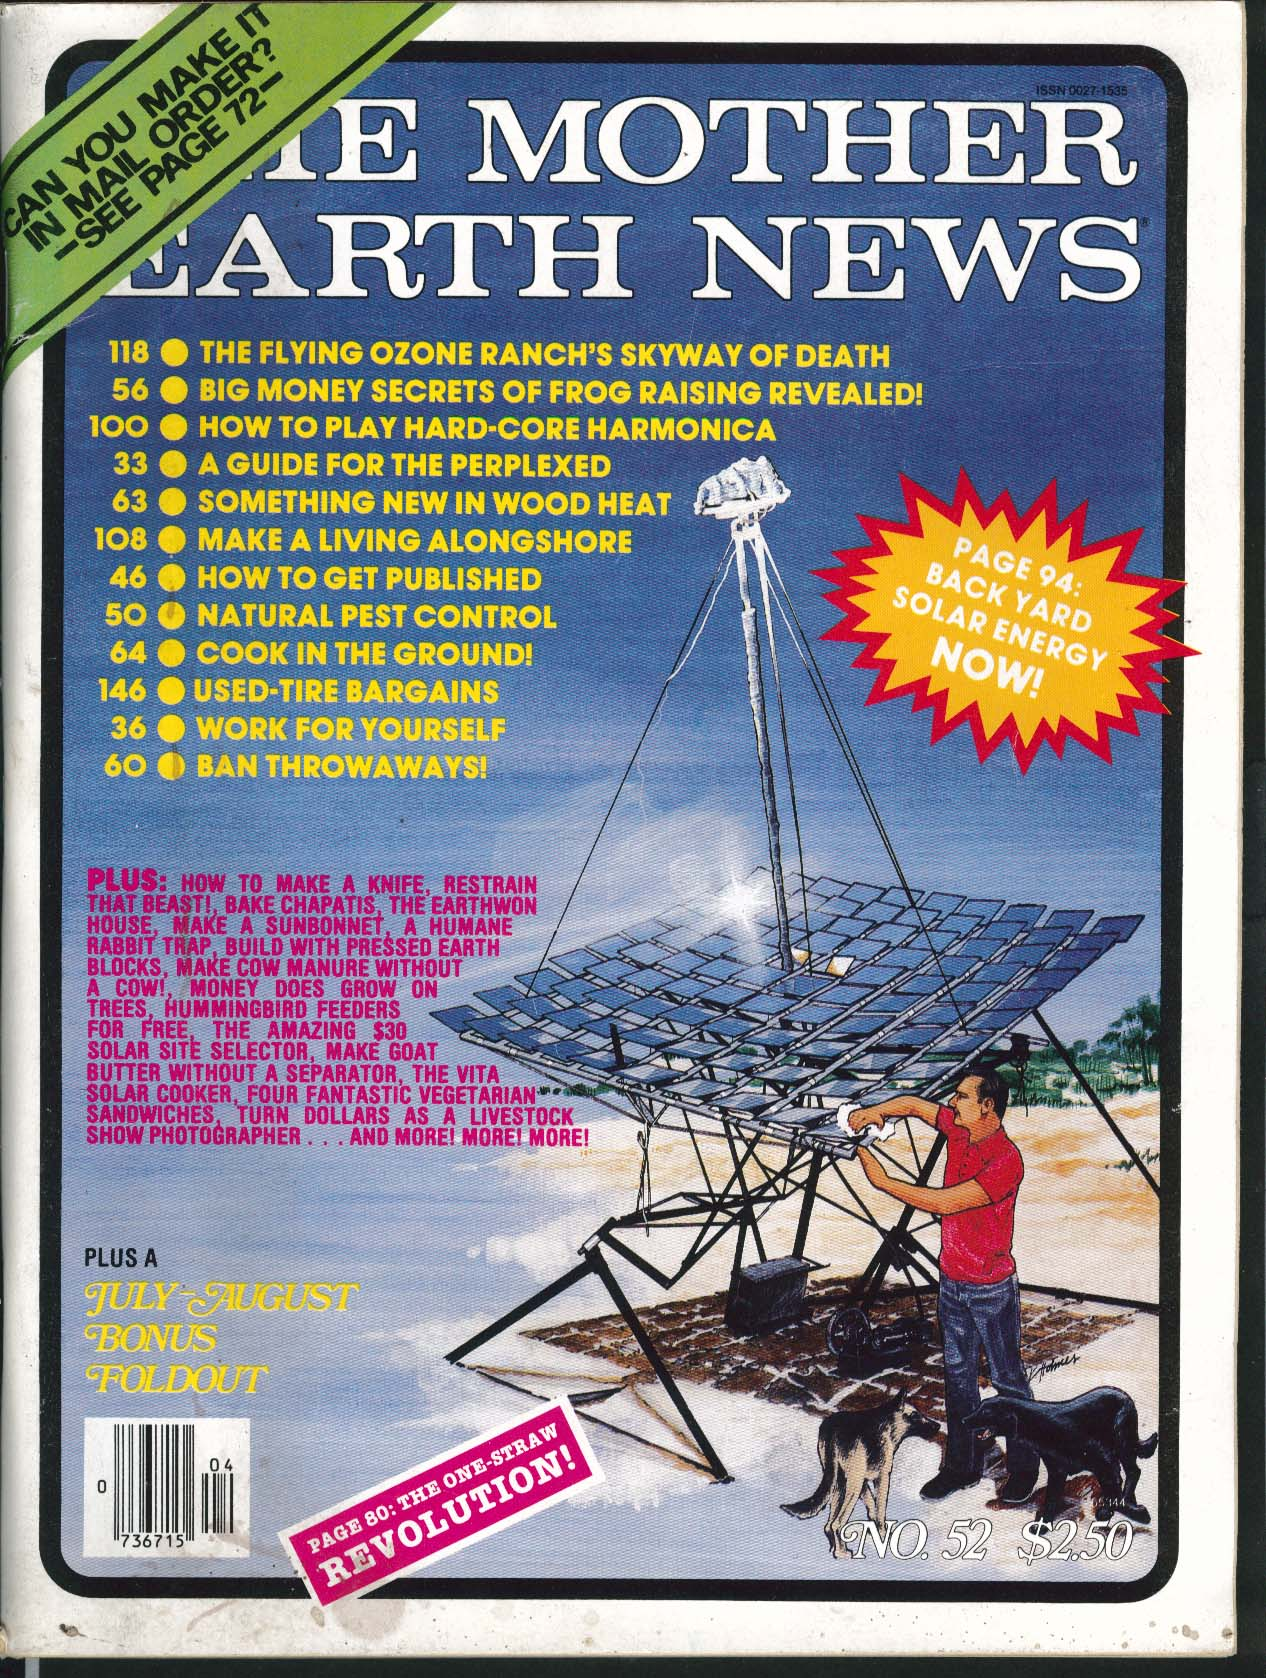 MOTHER EARTH NEWS 52 Flying Ozone Ranch Frog Raising Harmonica Pest Control 1978